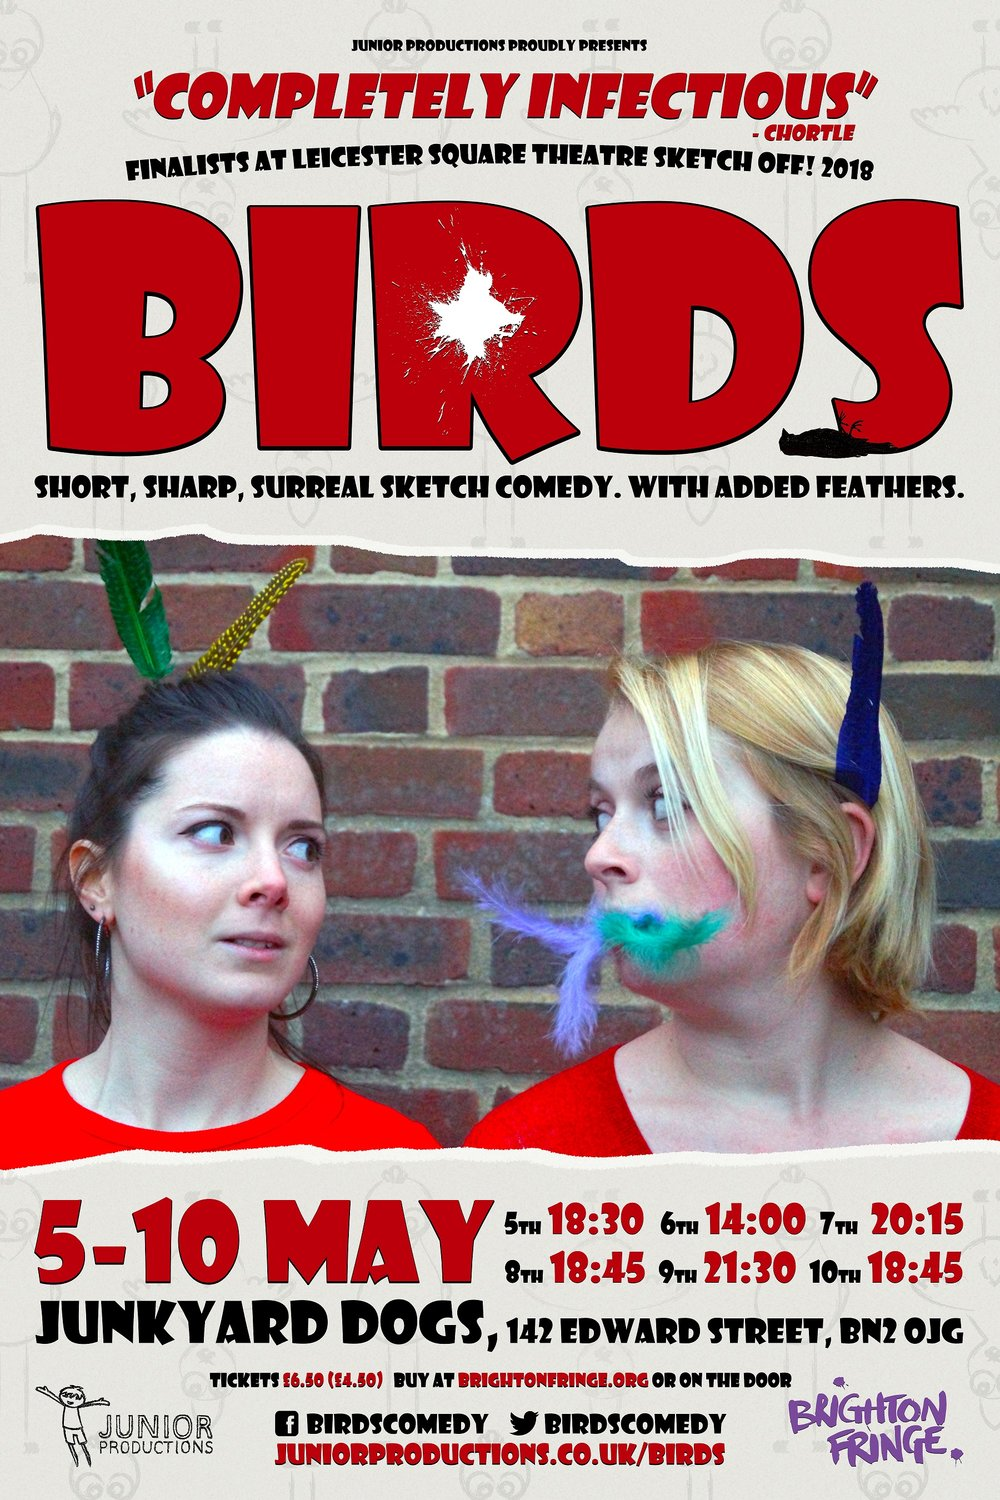 Official Brighton Fringe poster for Birds.